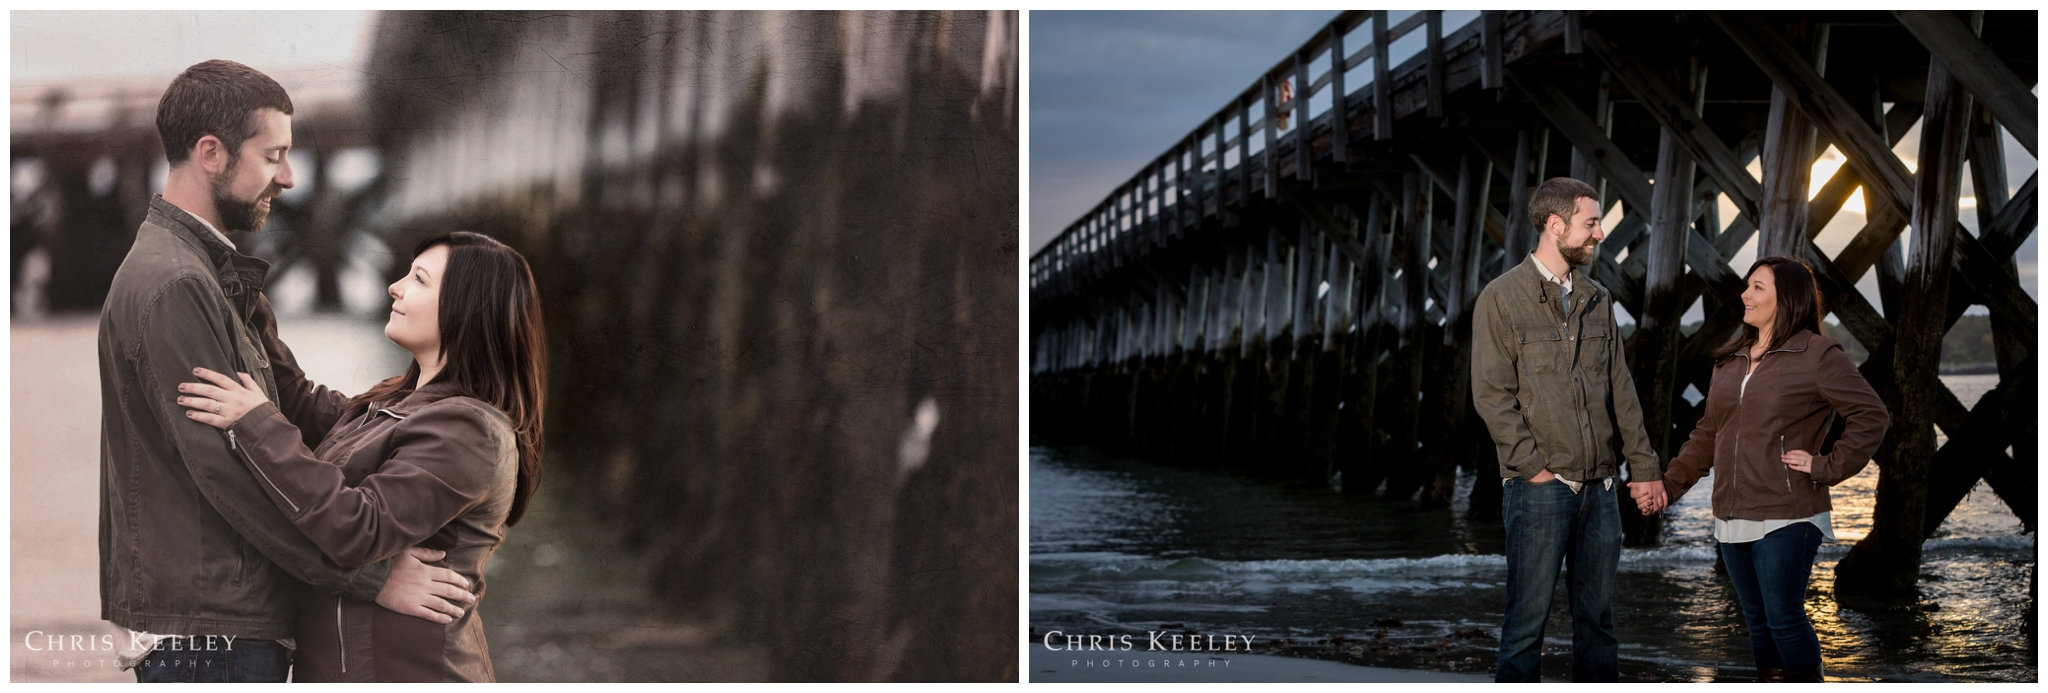 kittery-maine-fort-foster-engagement-photography-session-wedding-photographer-chris-keeley05.jpg